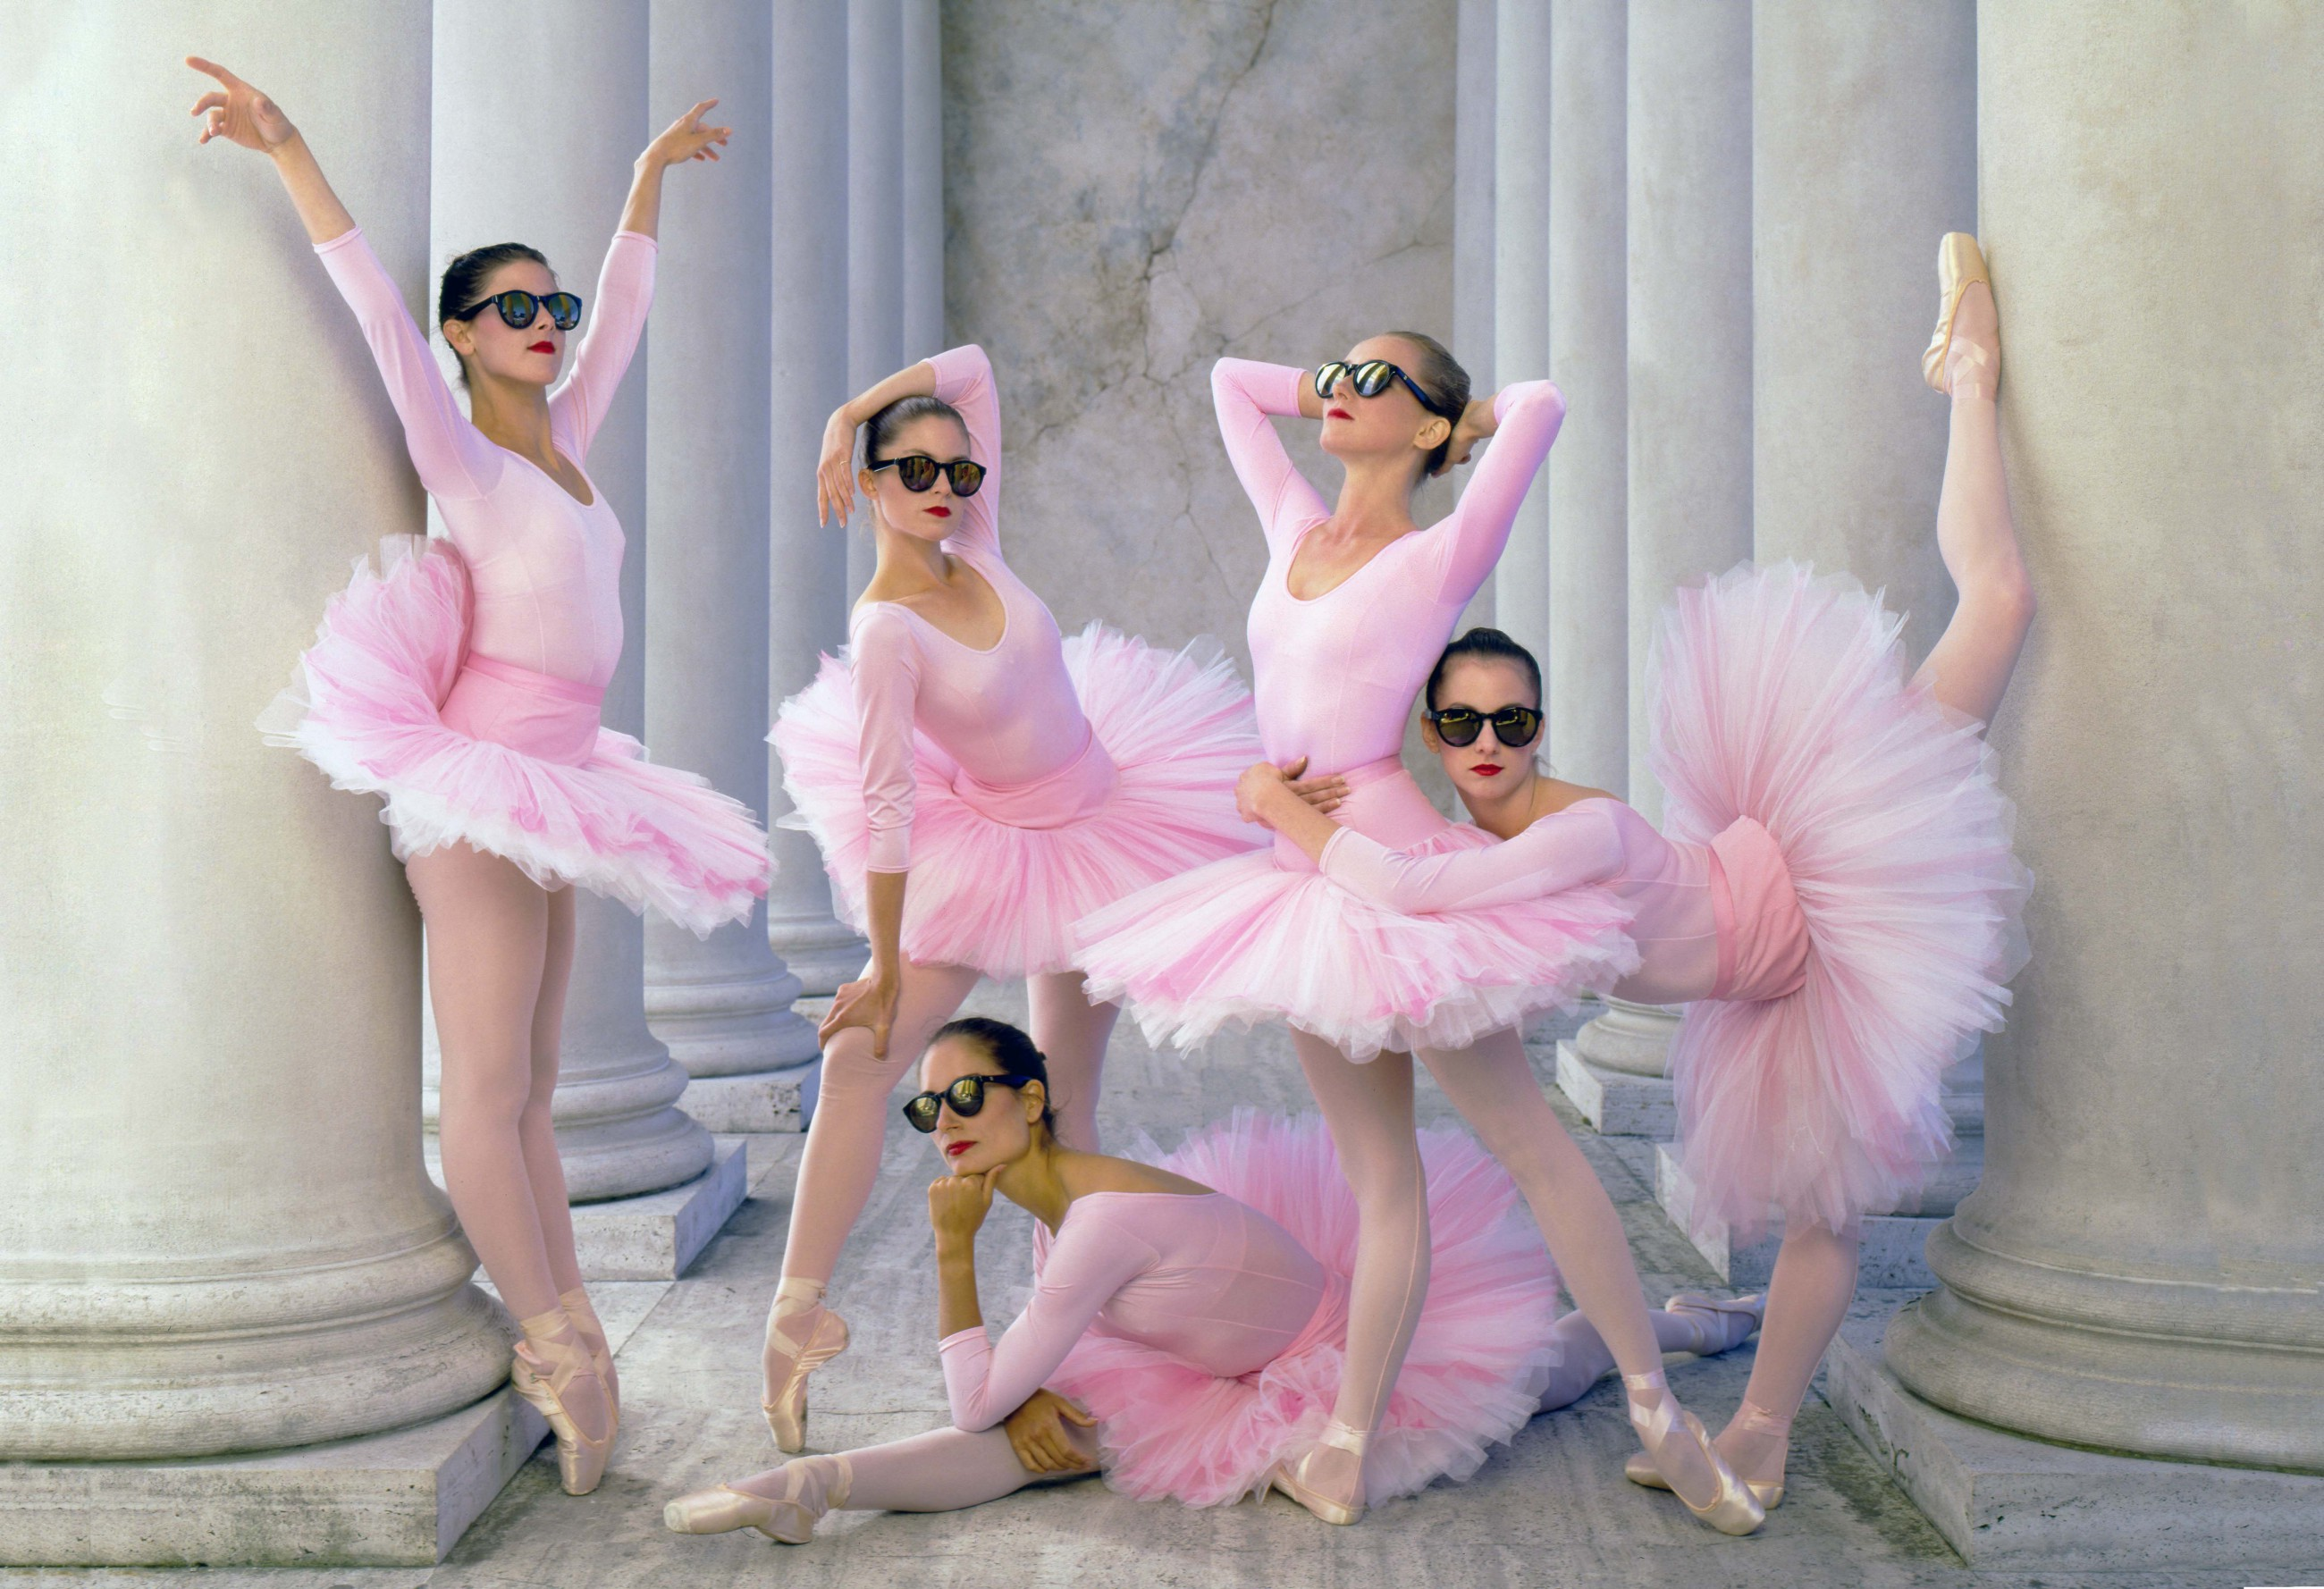 Tale of the Dangerous Pink Tutus